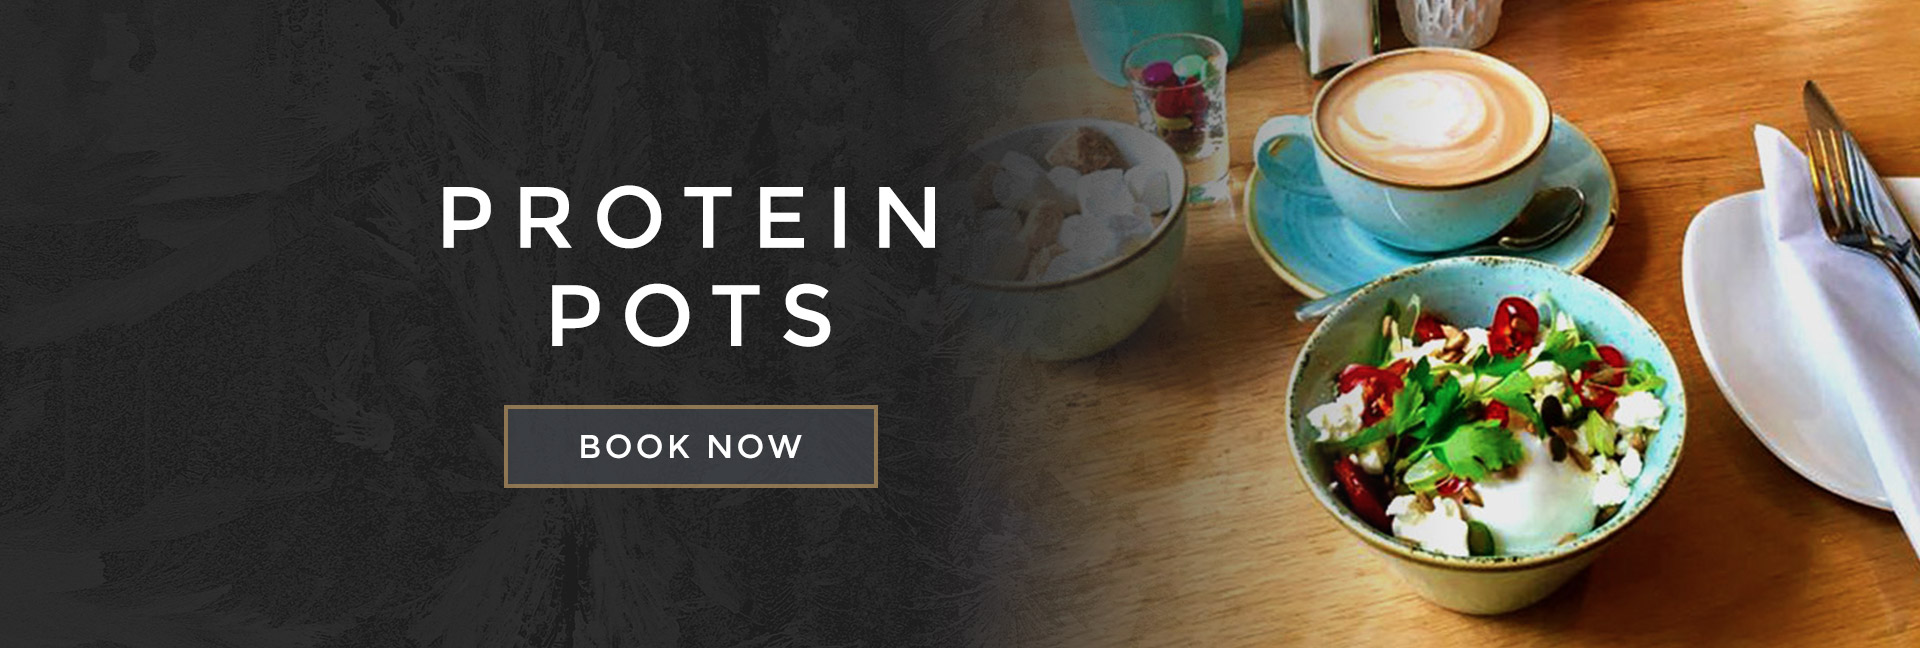 Protein pots at All Bar One Regent Street - Book your table